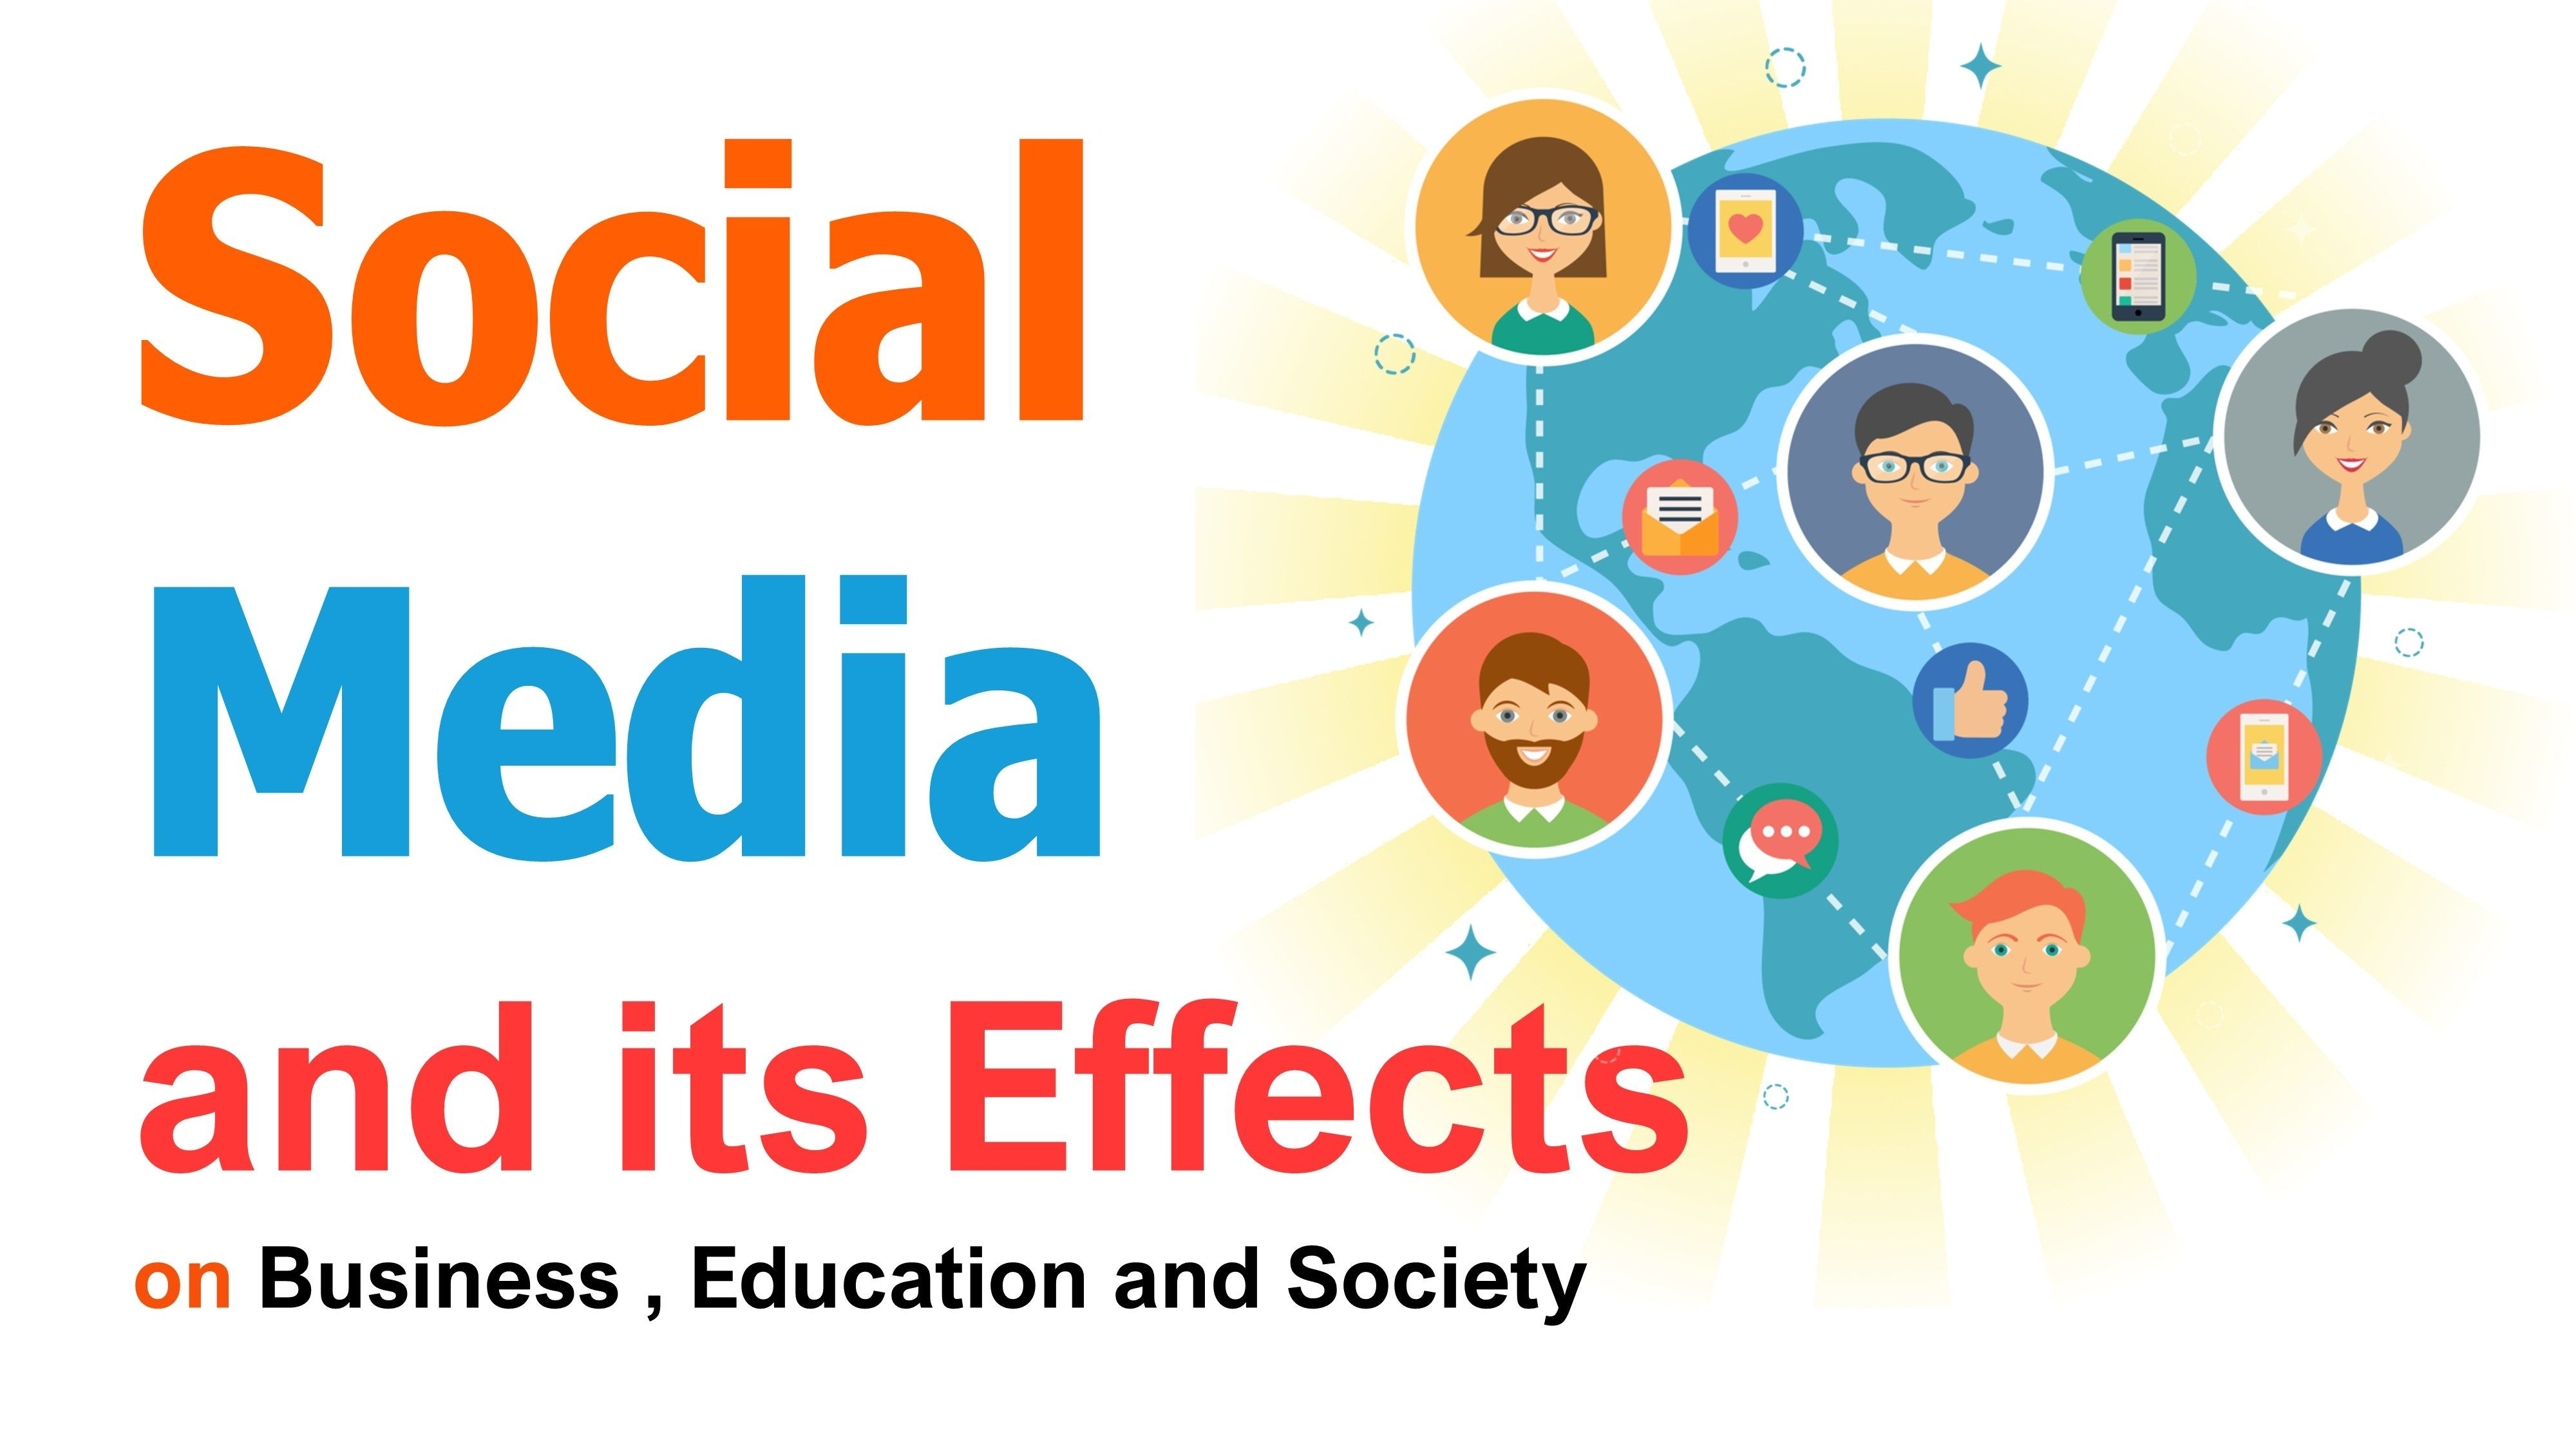 Social Media and its Effects in 2020 Social media